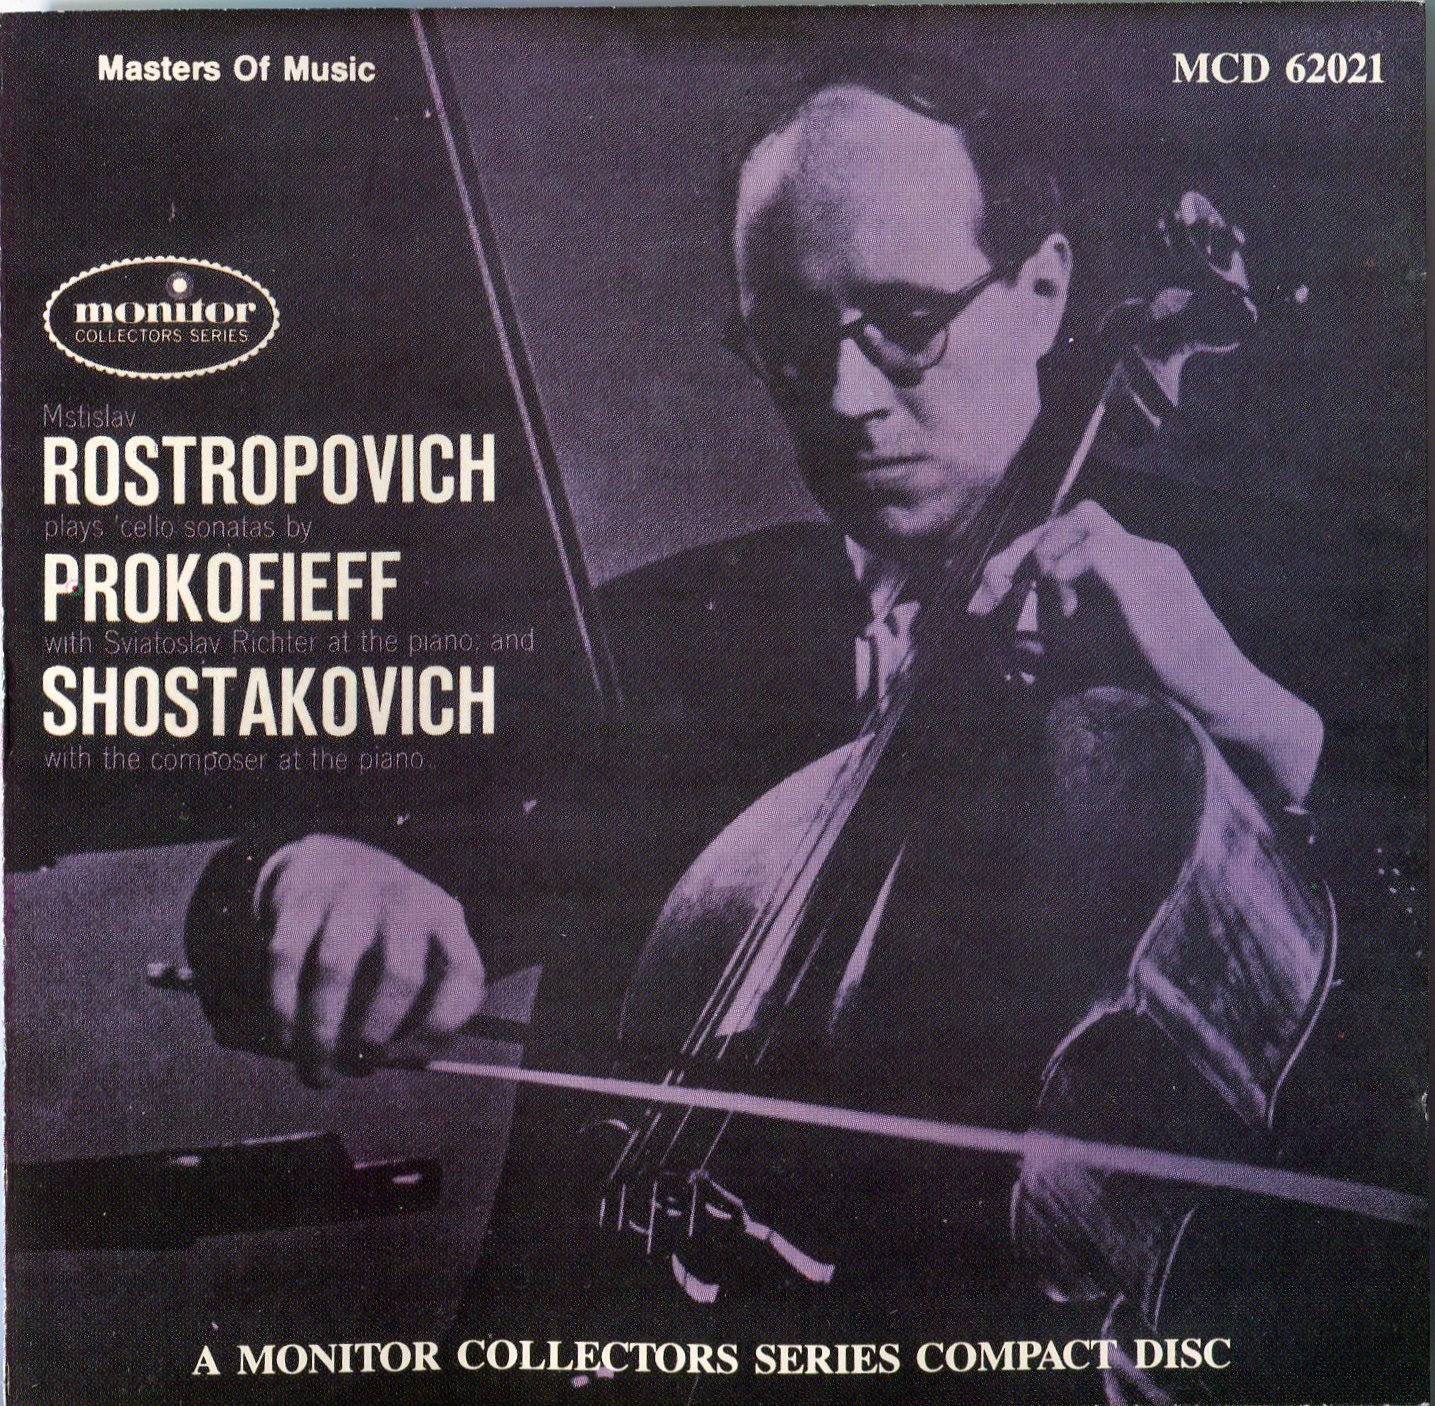 Rostropovich plays Prokofiev & Shostakovich Cello Sonatas